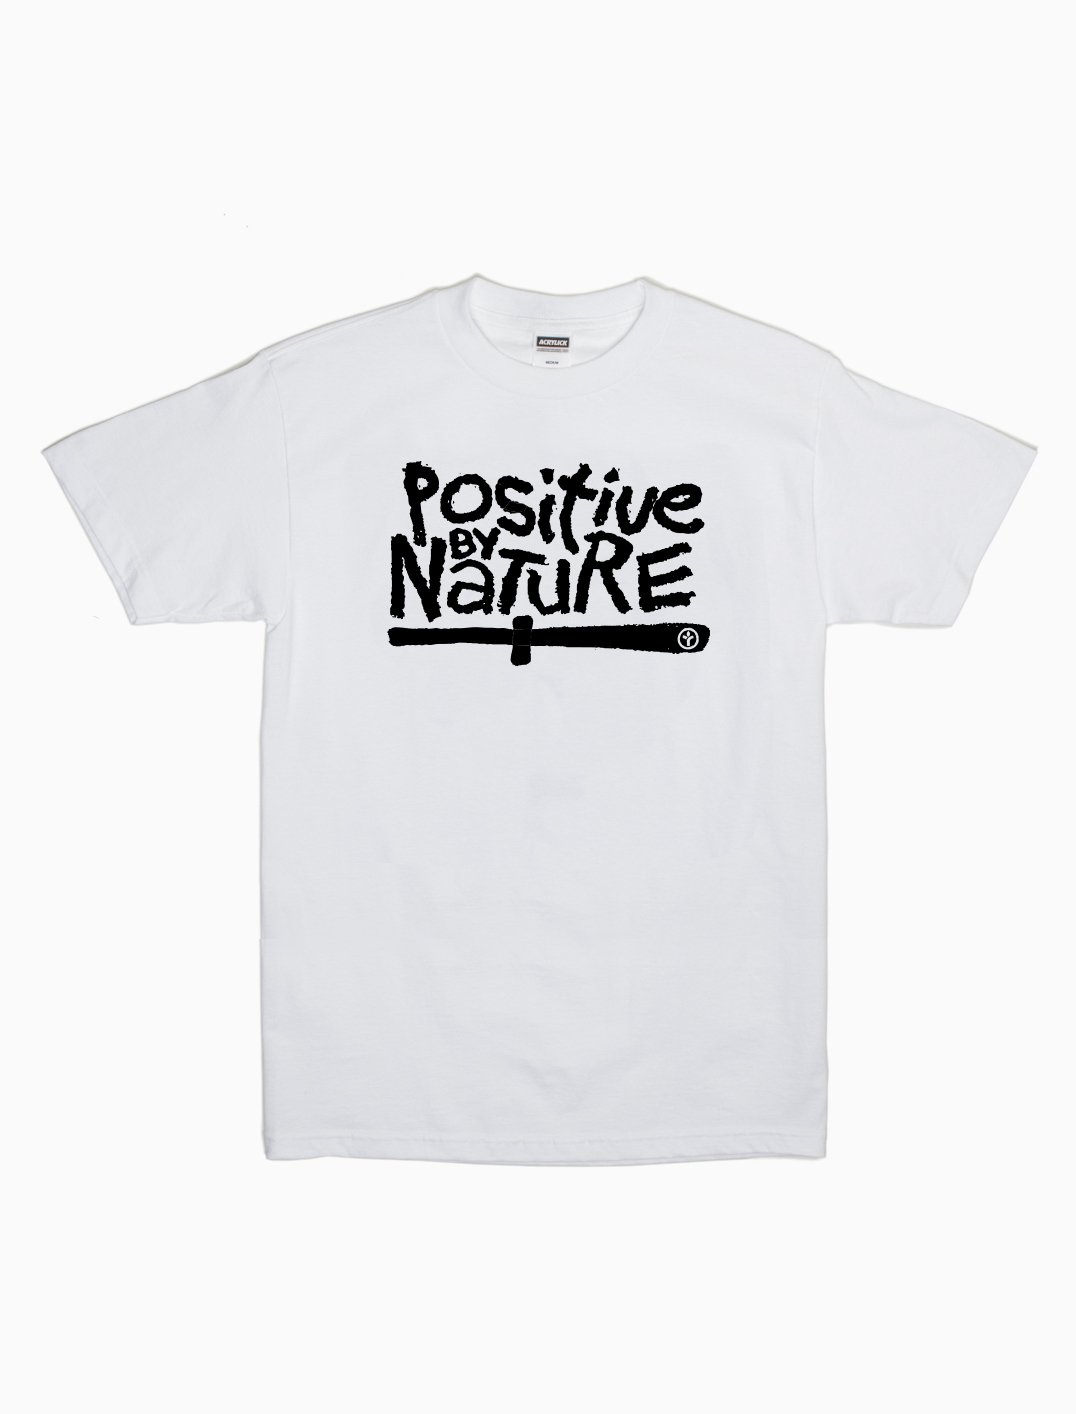 Positive By Nature Tee